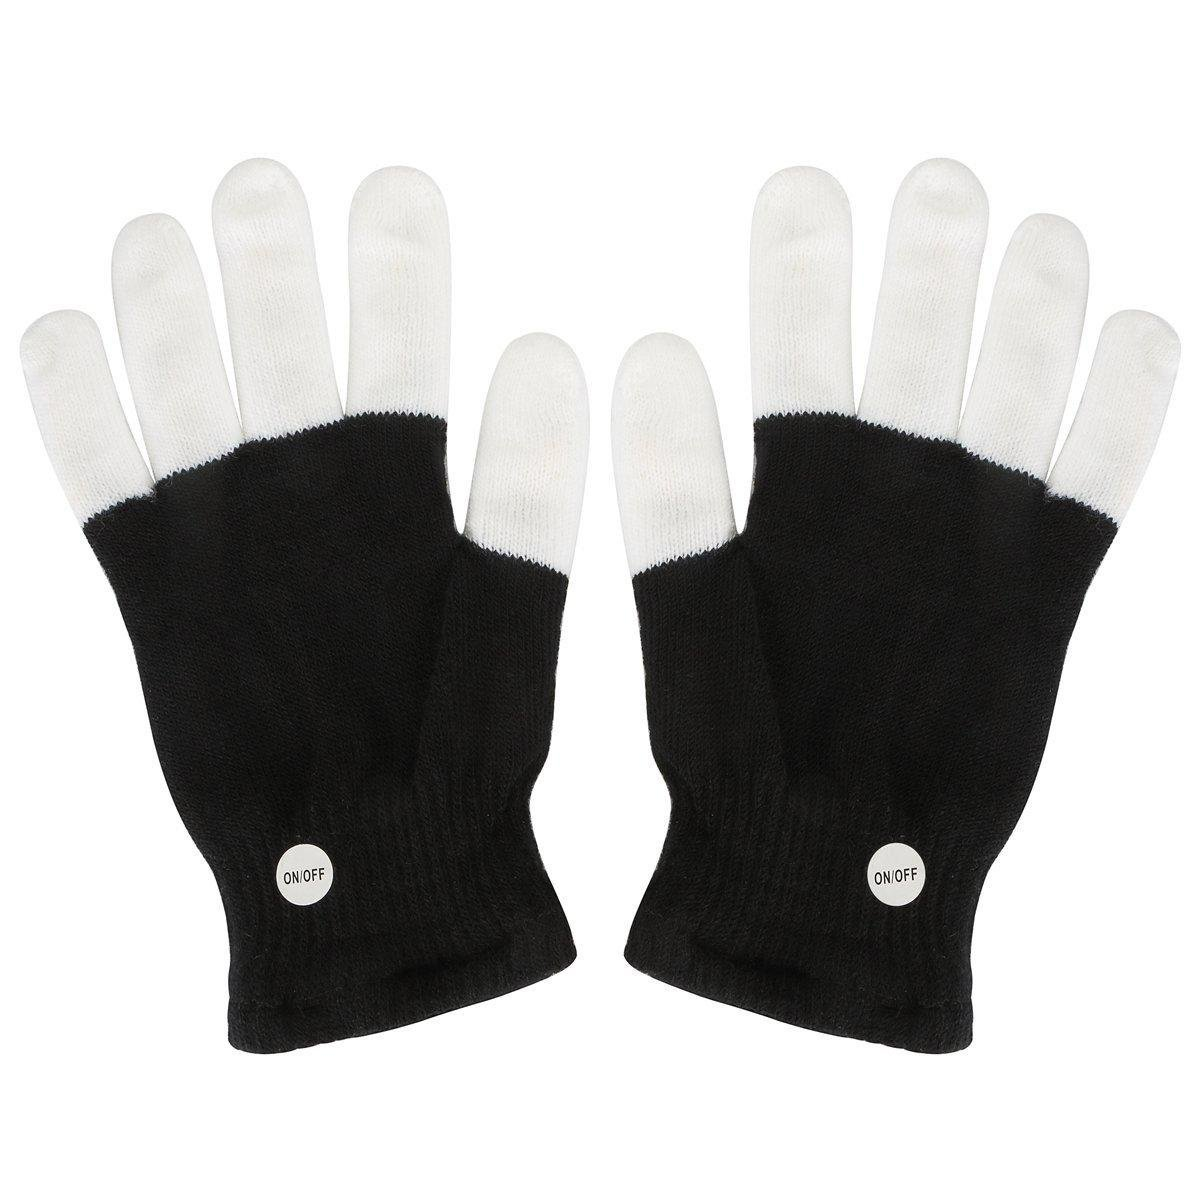 Multi-Color Electronic LED Flashing Gloves - One Pair w/Random Color and Design